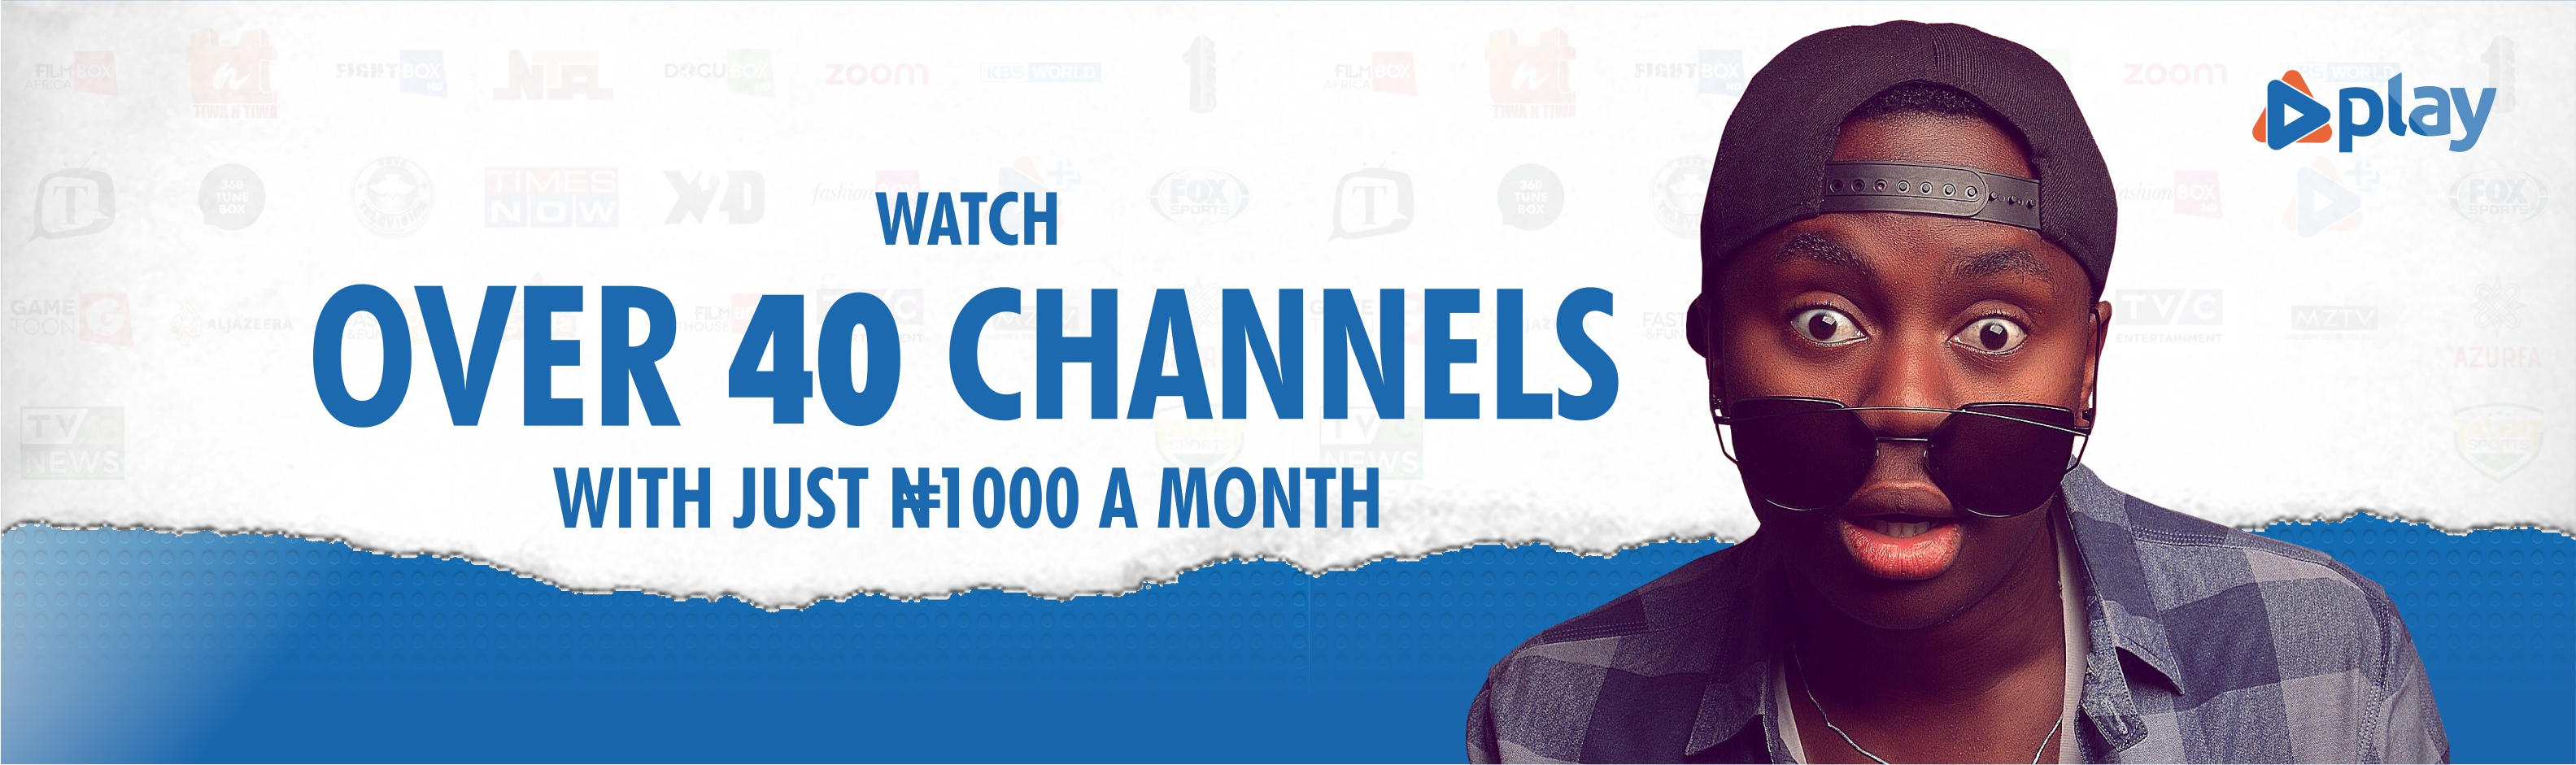 Over 40 Channels